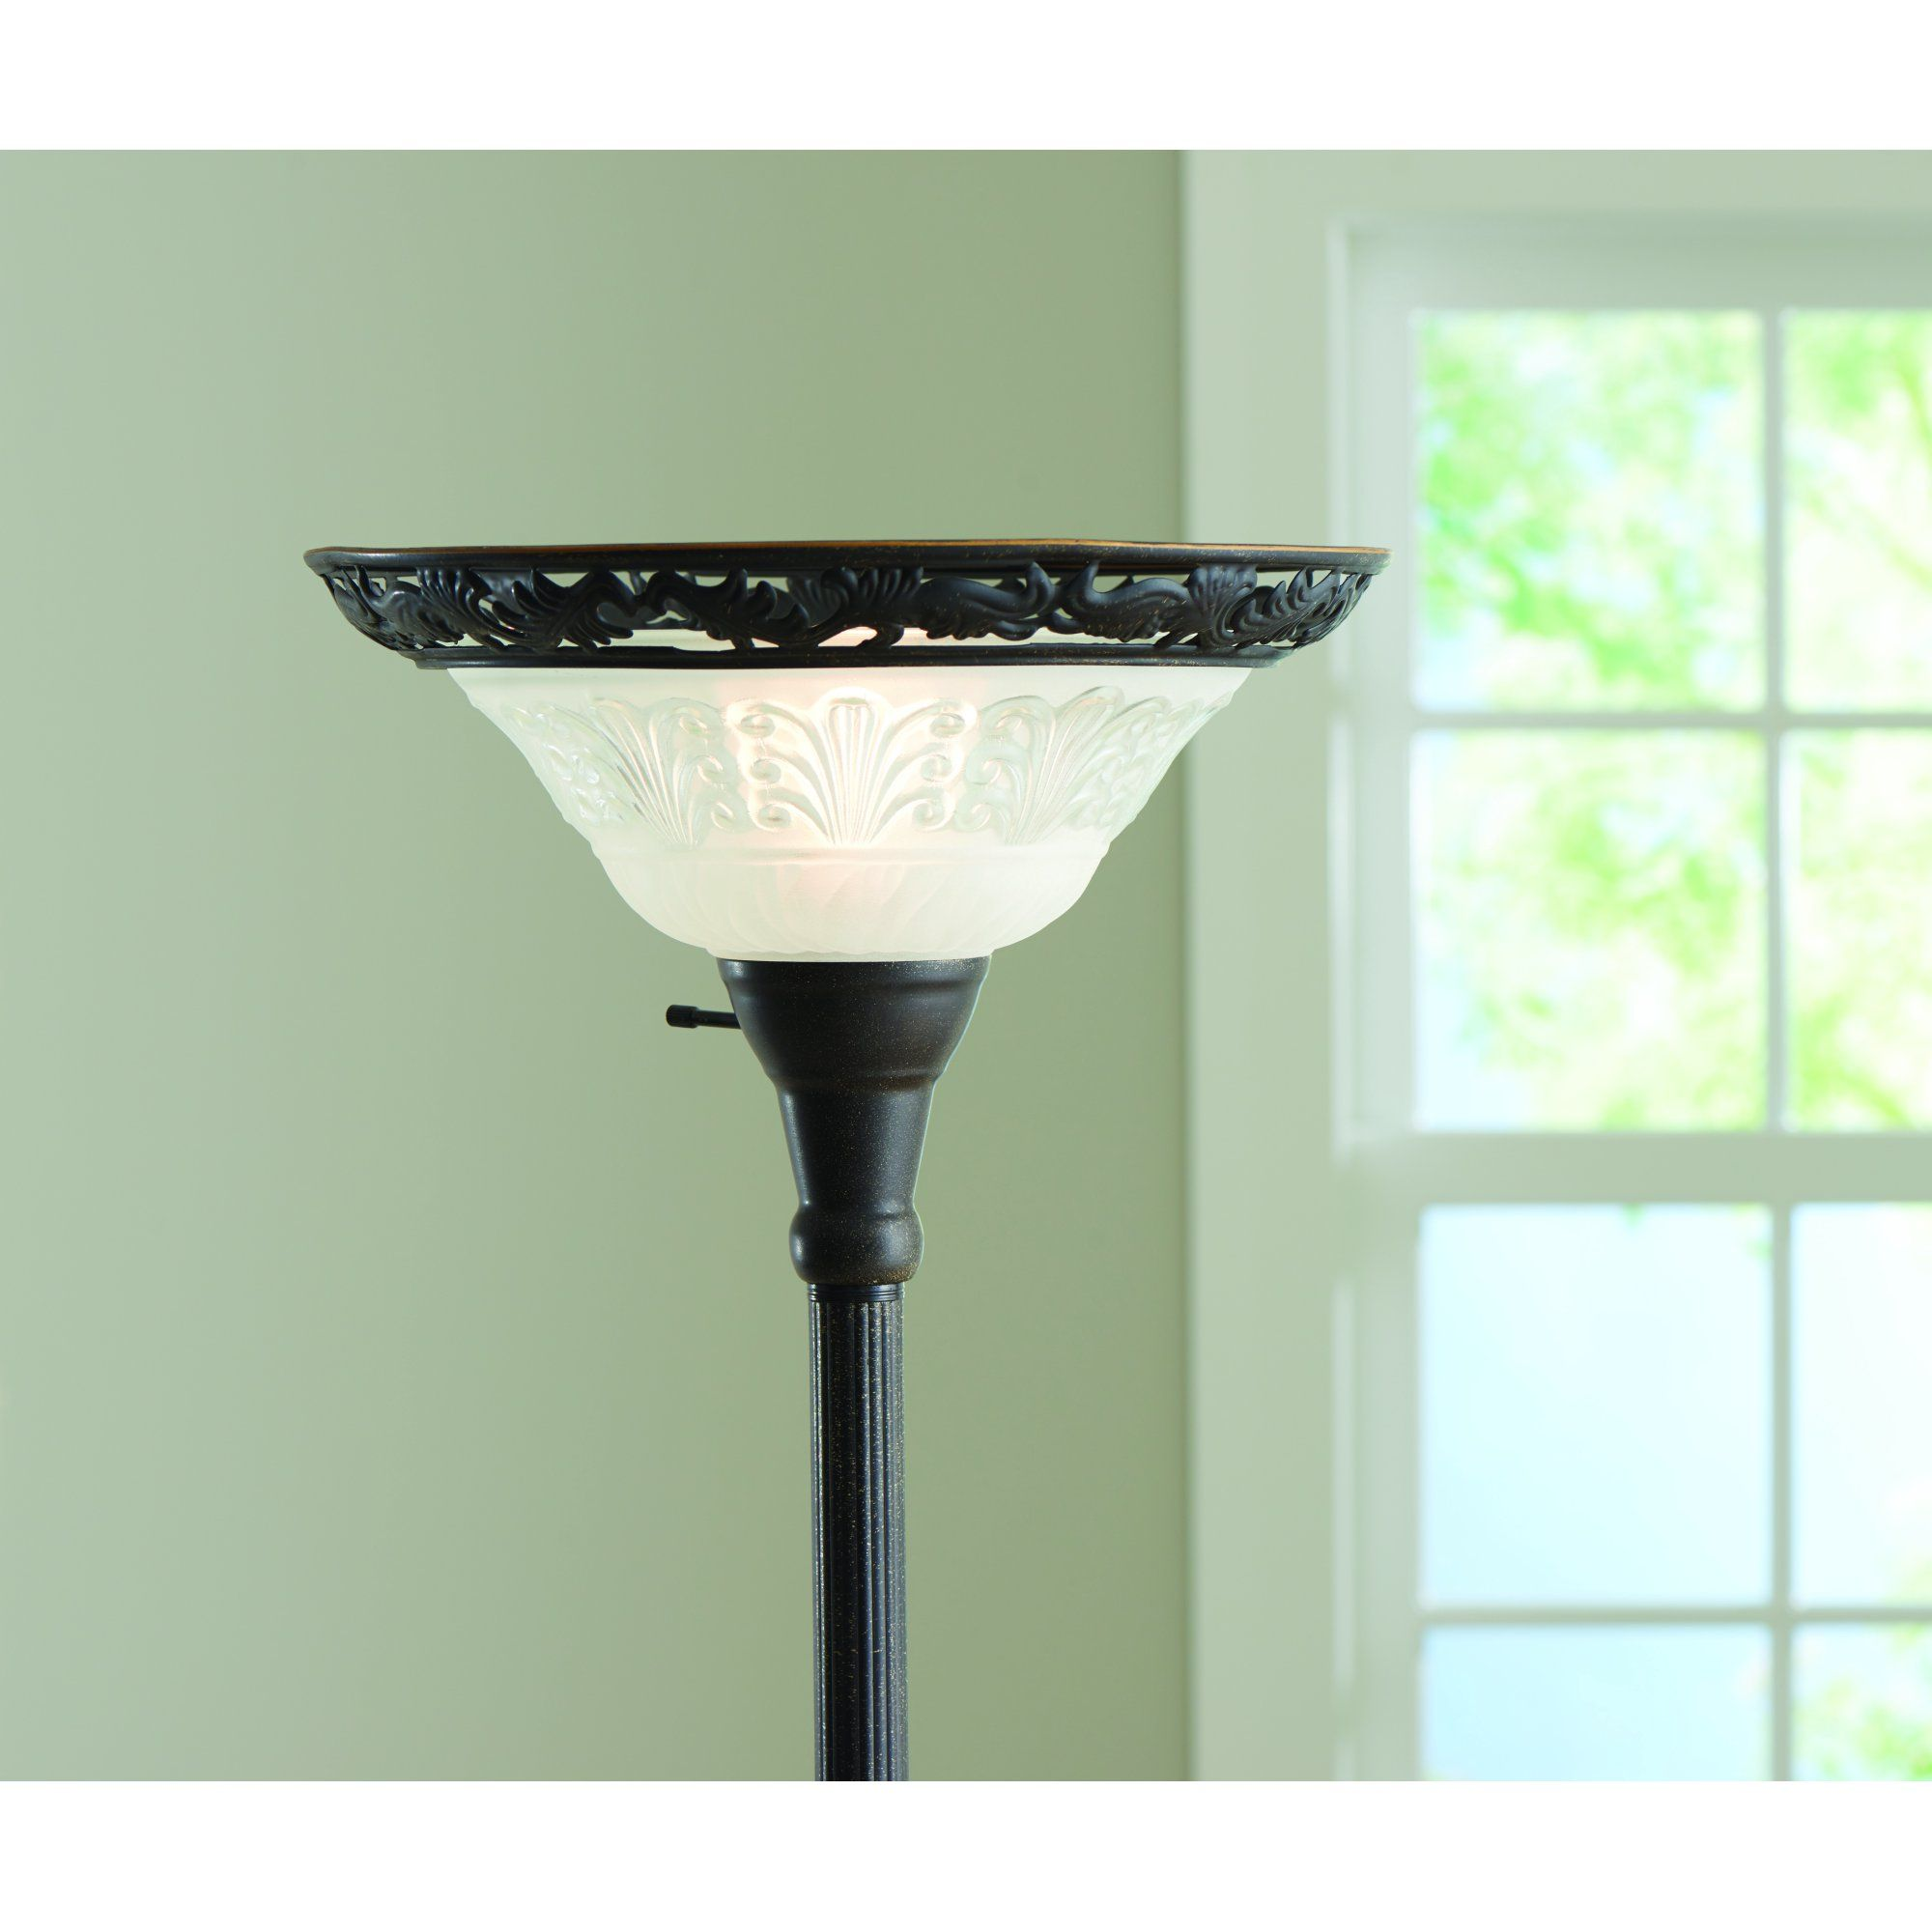 1e442955c9dbc996d11964c918929094 - Better Homes And Gardens Frosted Glass Globe Lights